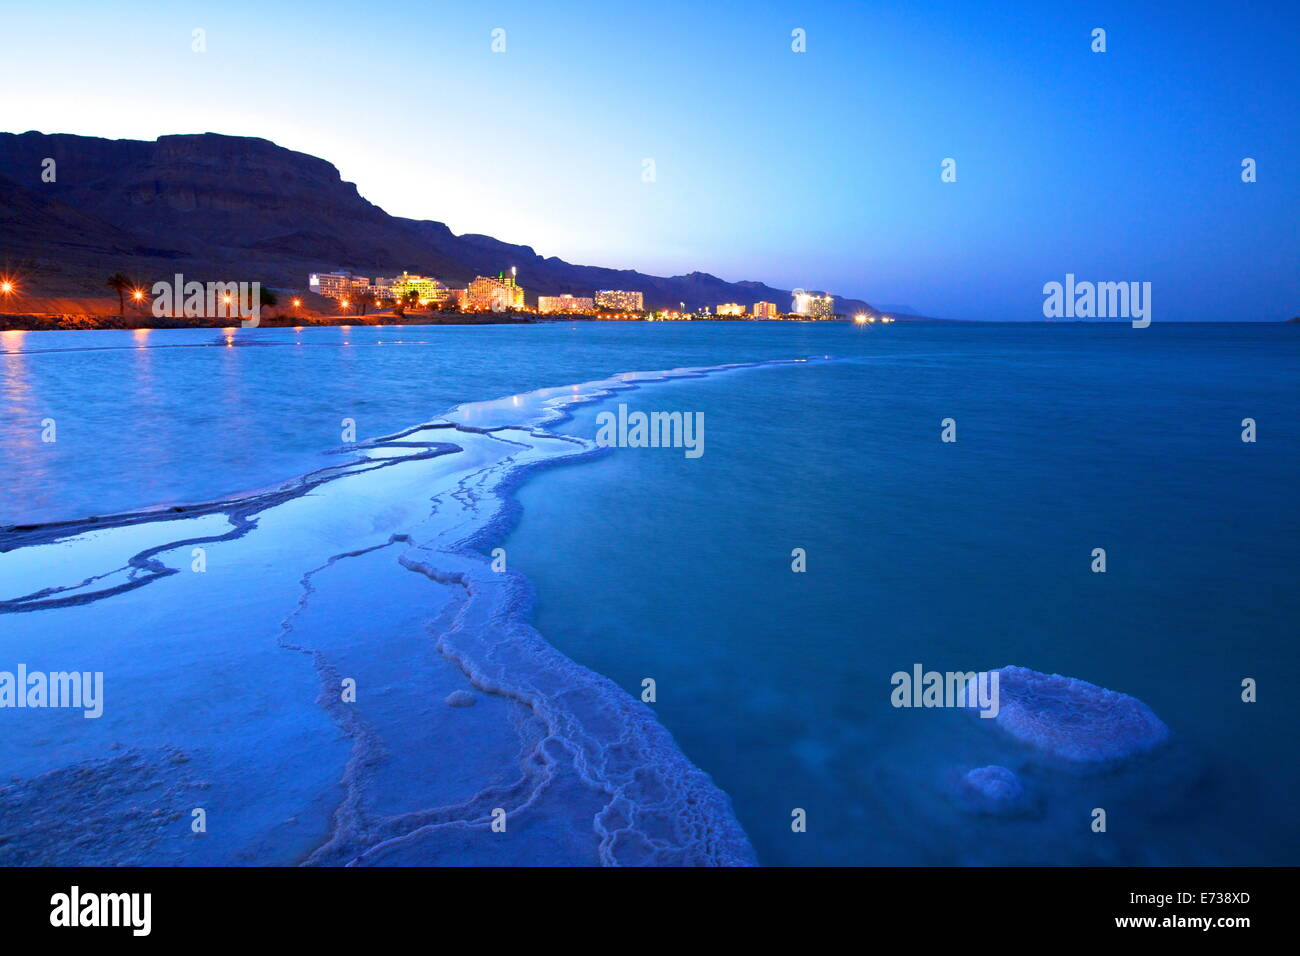 Salt deposit in foreground looking towards Ein Bokek, Ein Bokek, Dead Sea, Israel, Middle East - Stock Image